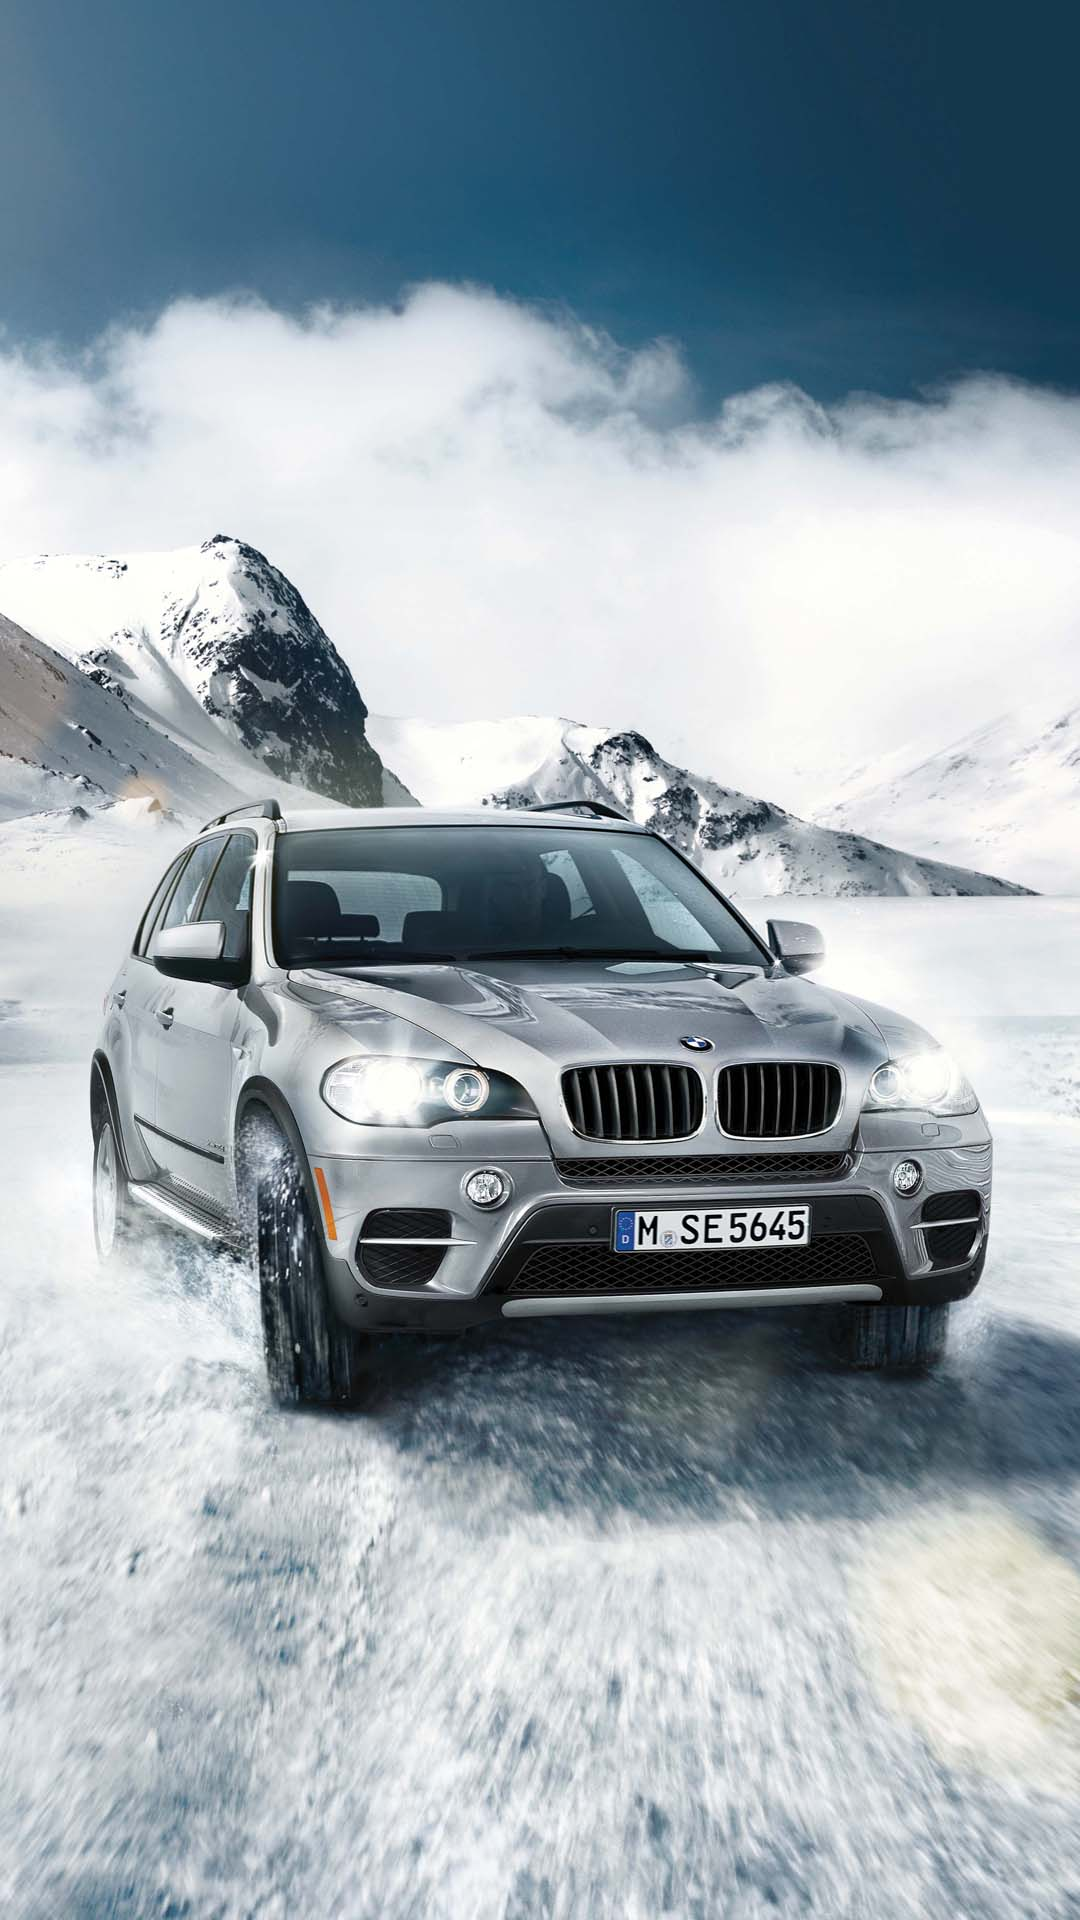 Bmw x5 best htc one wallpapers free and easy to download bmw x5 htc one wallpaper voltagebd Image collections